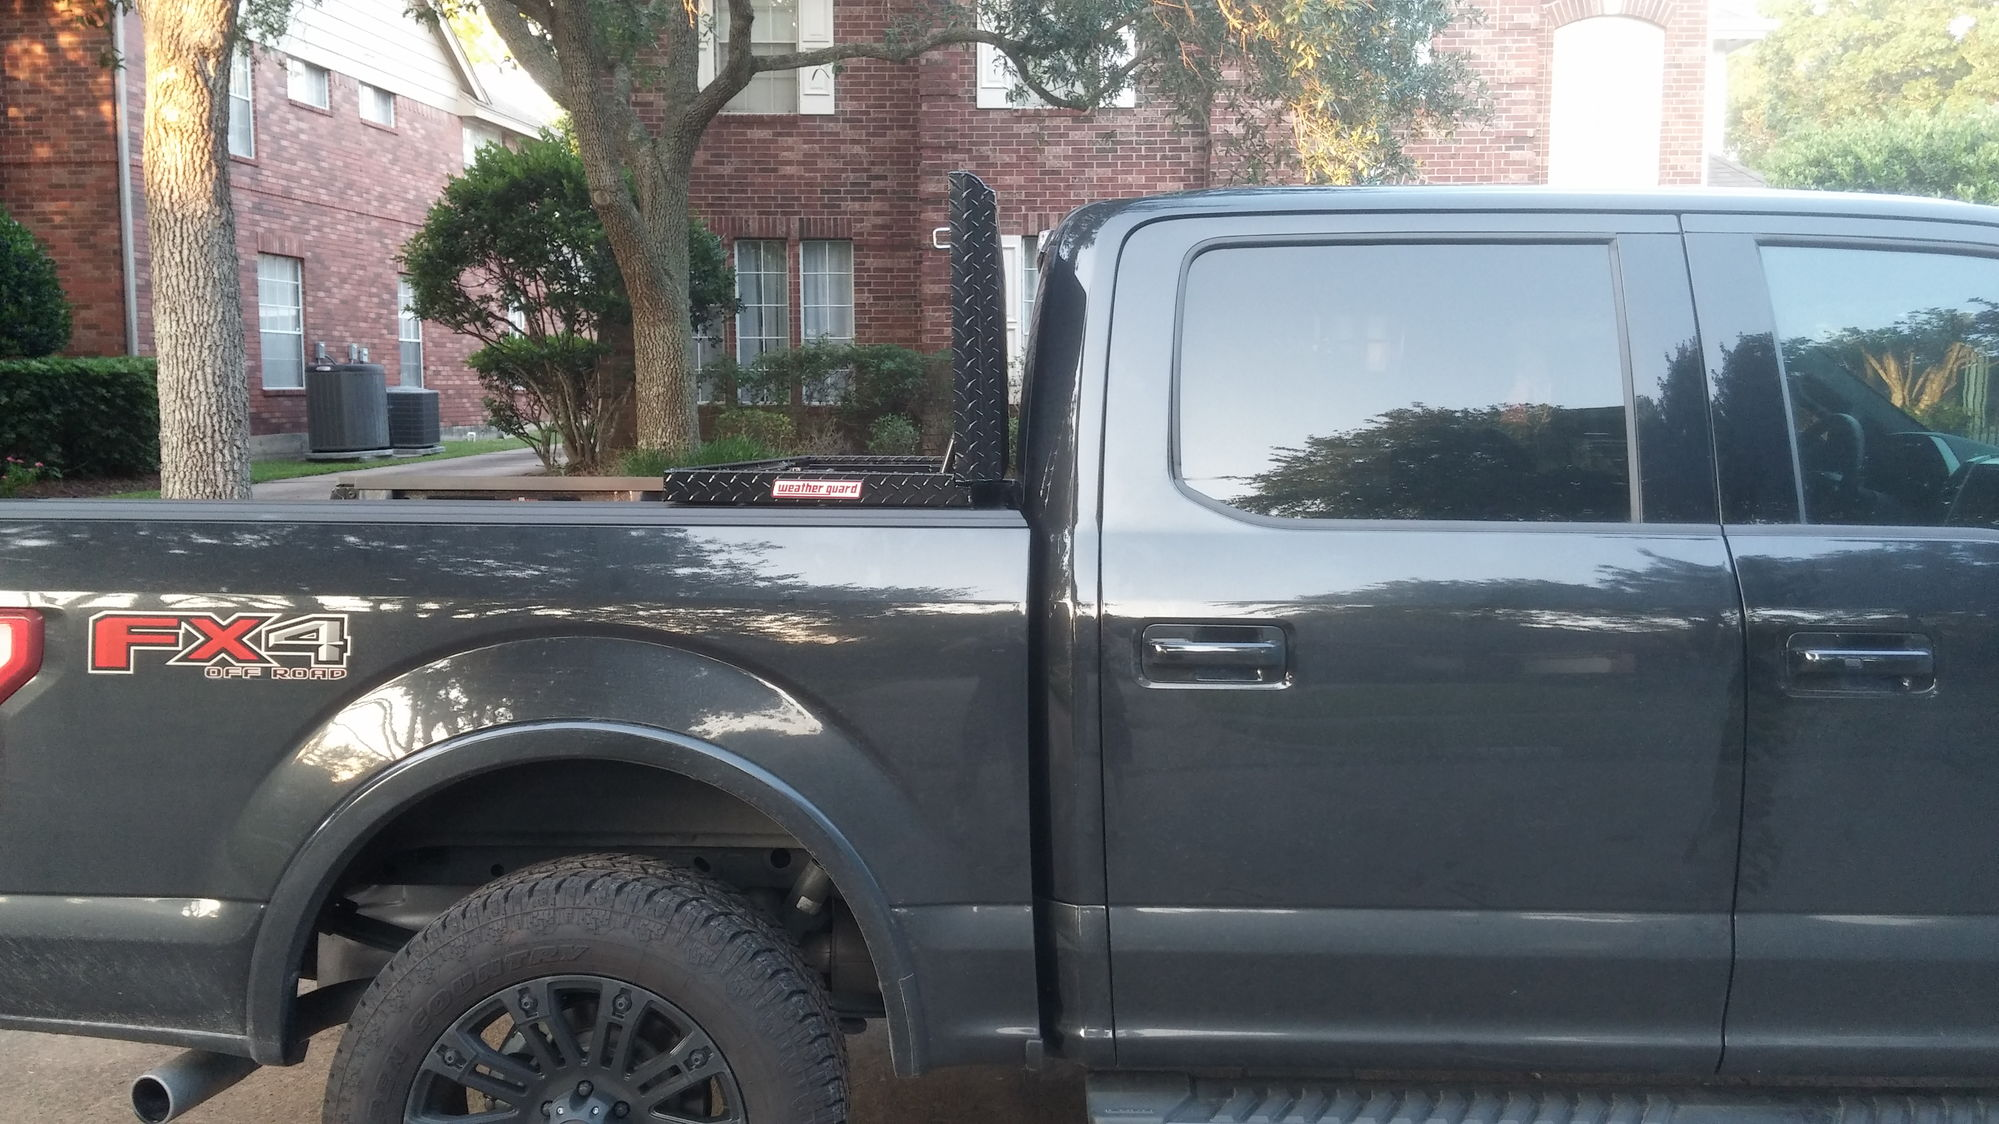 F150 Tool Box >> Low profile Weatherguard 121-5-01 on 2015 F150 - Ford F150 Forum - Community of Ford Truck Fans